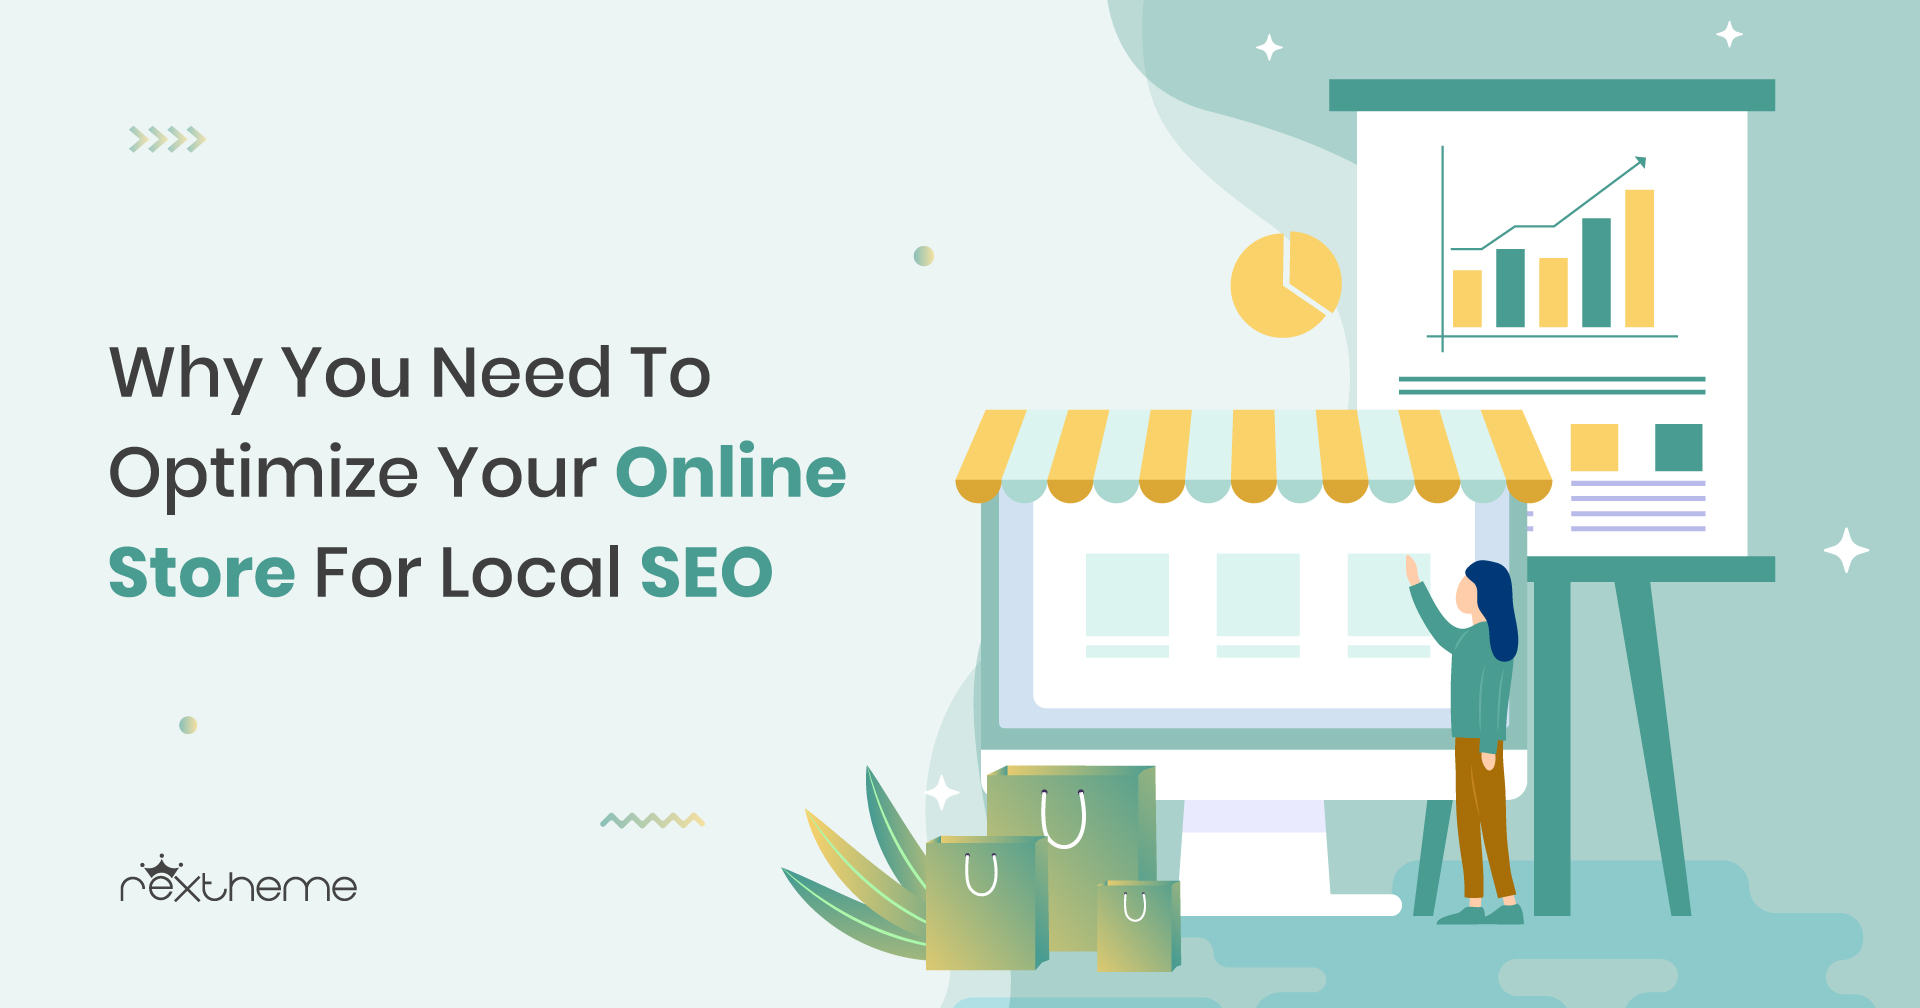 Optimize Local SEO For Your Online Store And Increase Sales [2020]